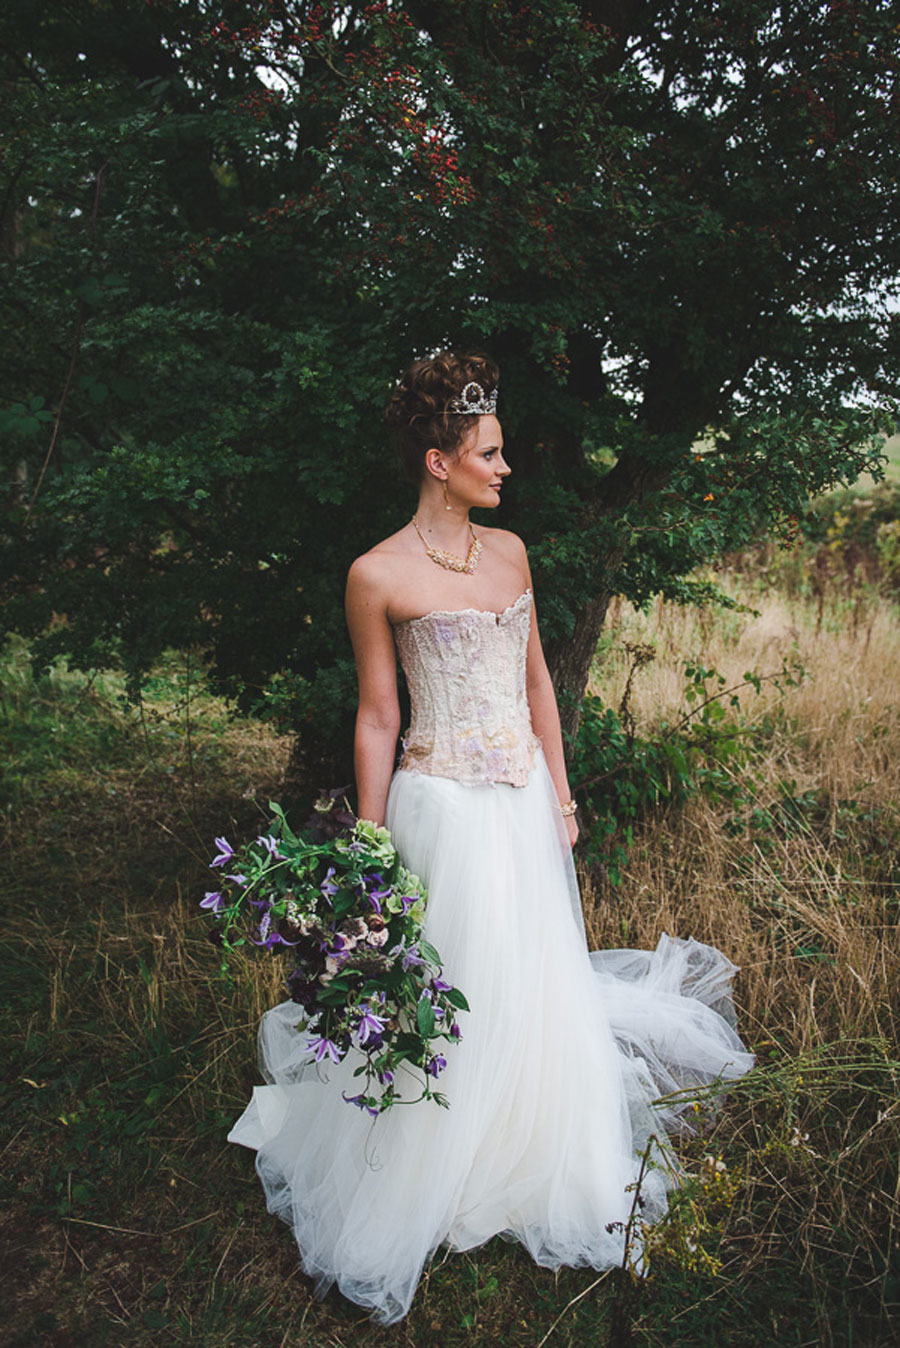 A Late Summer Renaissance-Meets-Fantasy Themed Bridal Shoot0045